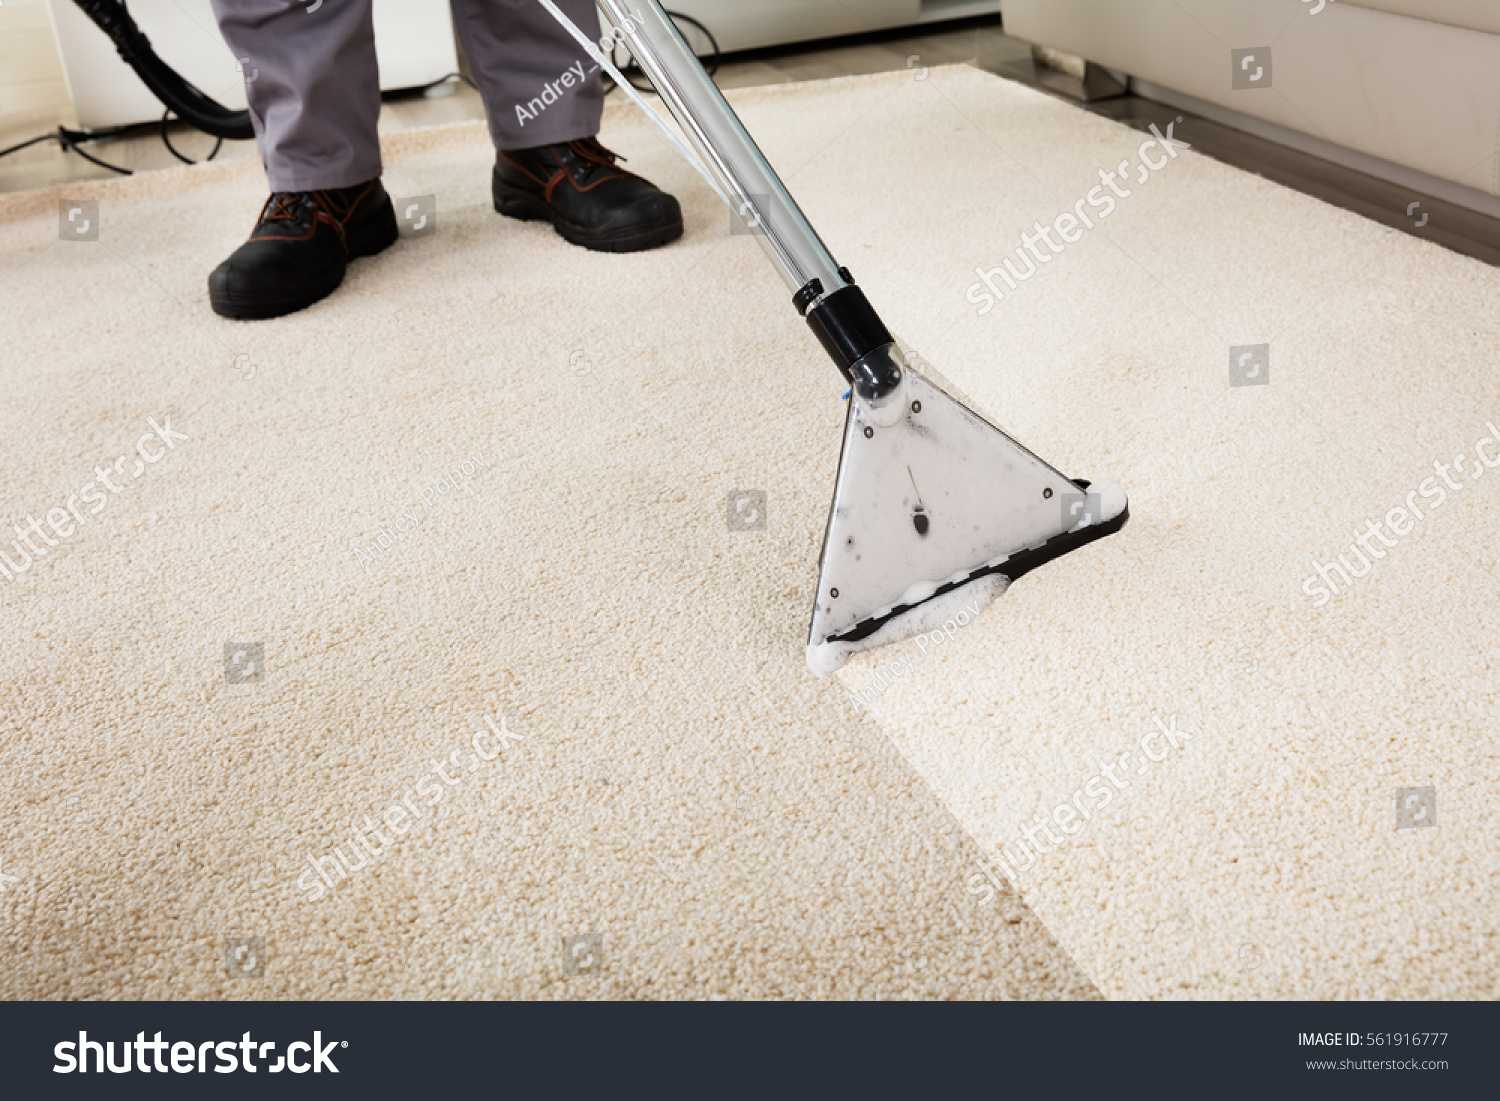 Close-up Of A Person Cleaning Carpet With Vacuum Cleaner #561916777